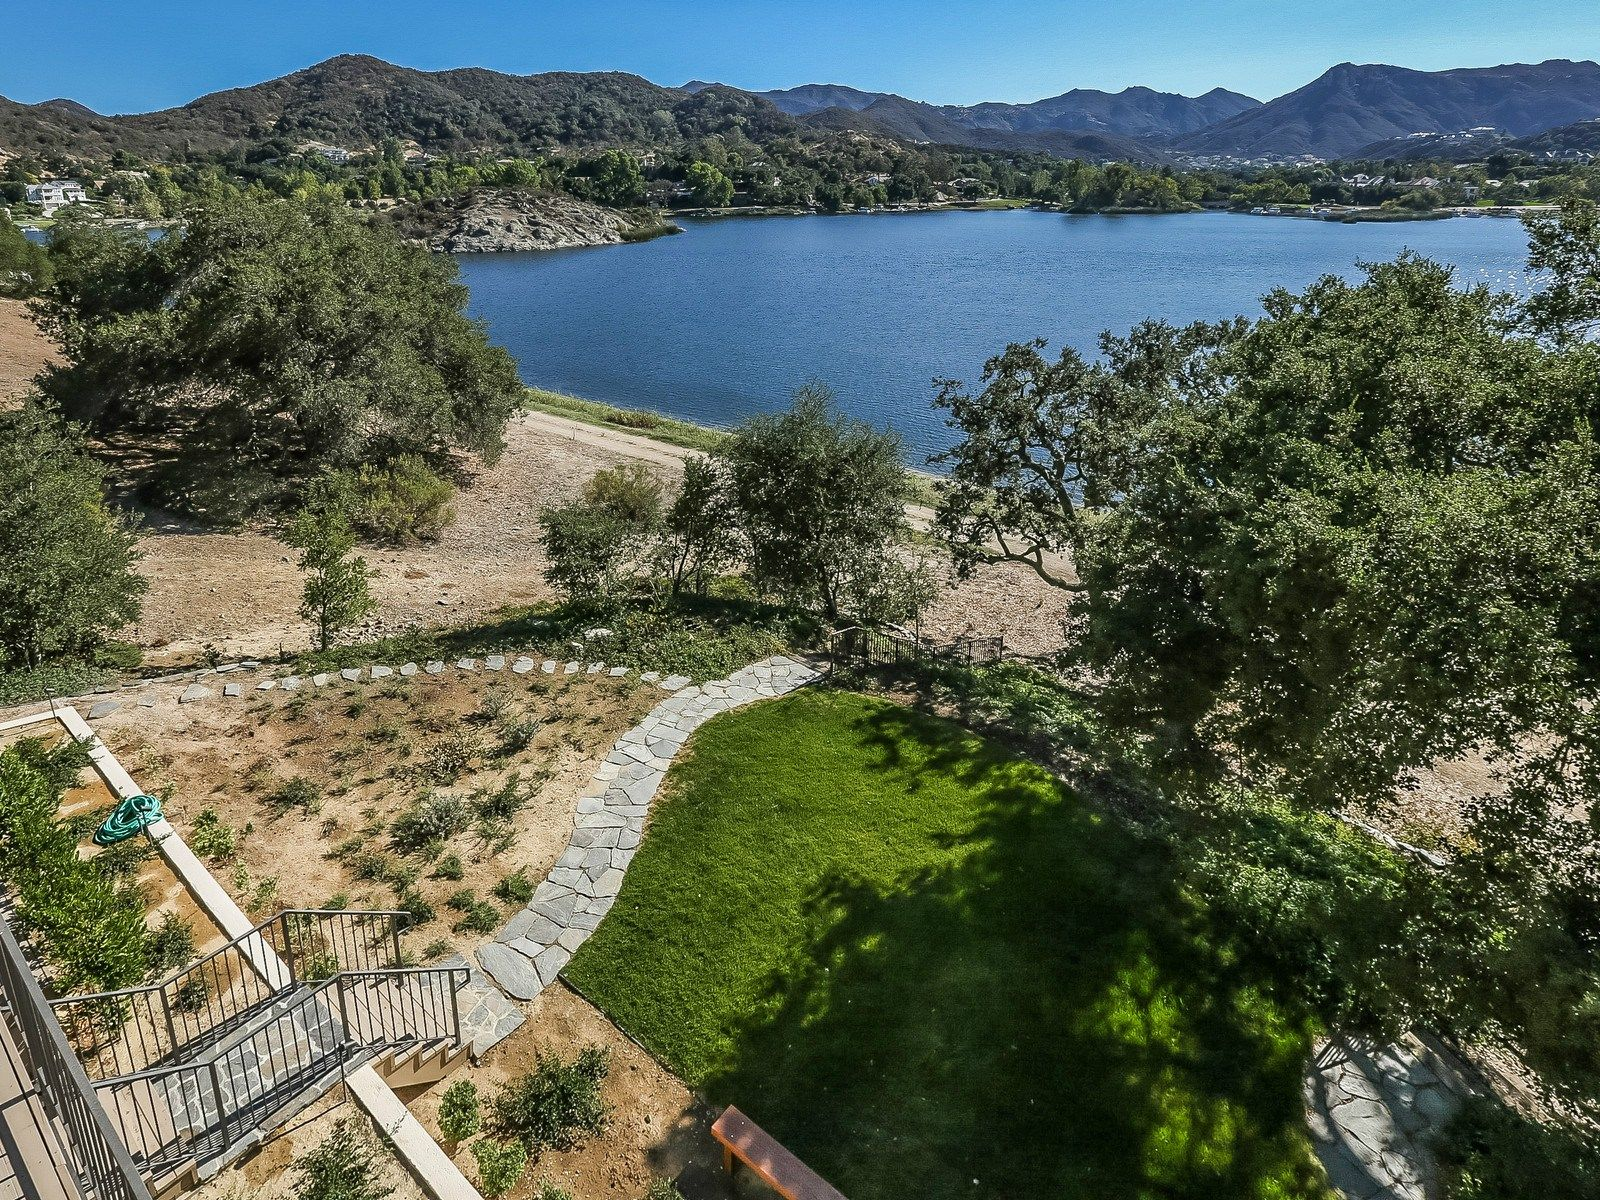 Lake Sherwood Waterfront & Sunset Views, Lake Sherwood CA Single Family Home - Los Angeles Real Estate